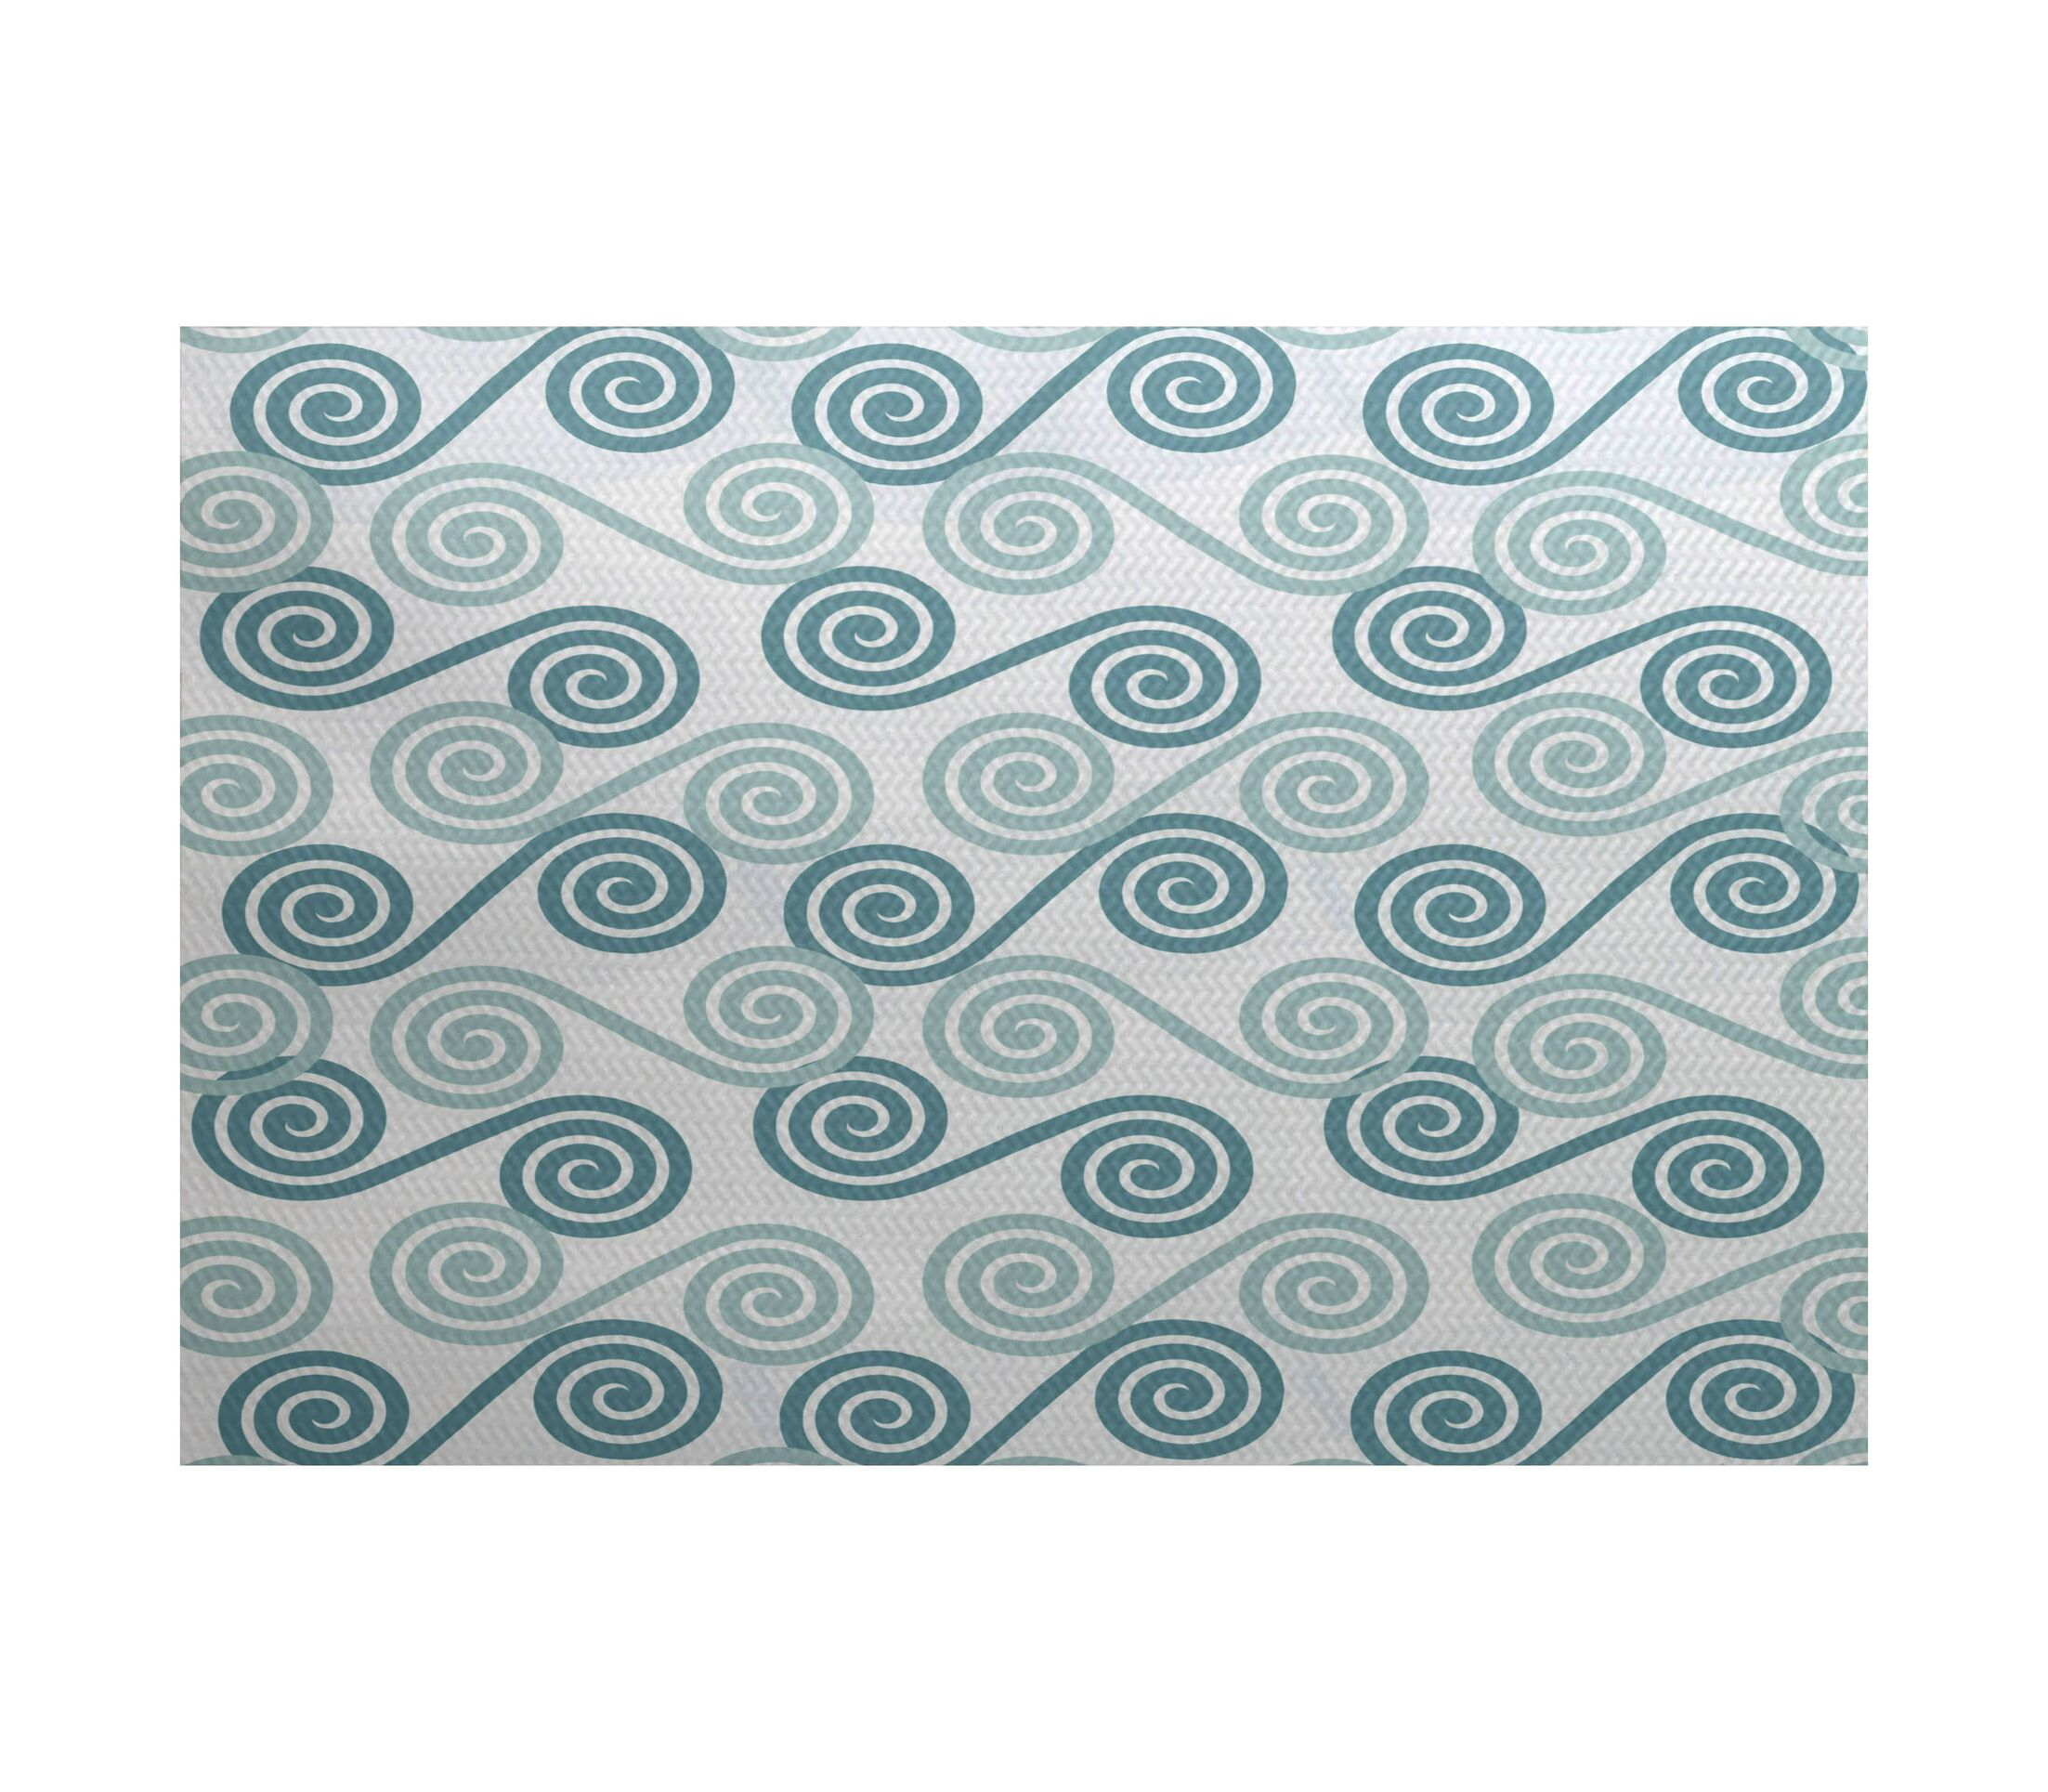 Nikkle Gray/Green Indoor/Outdoor Area Rug Rug Size: Rectangle 3' x 5'